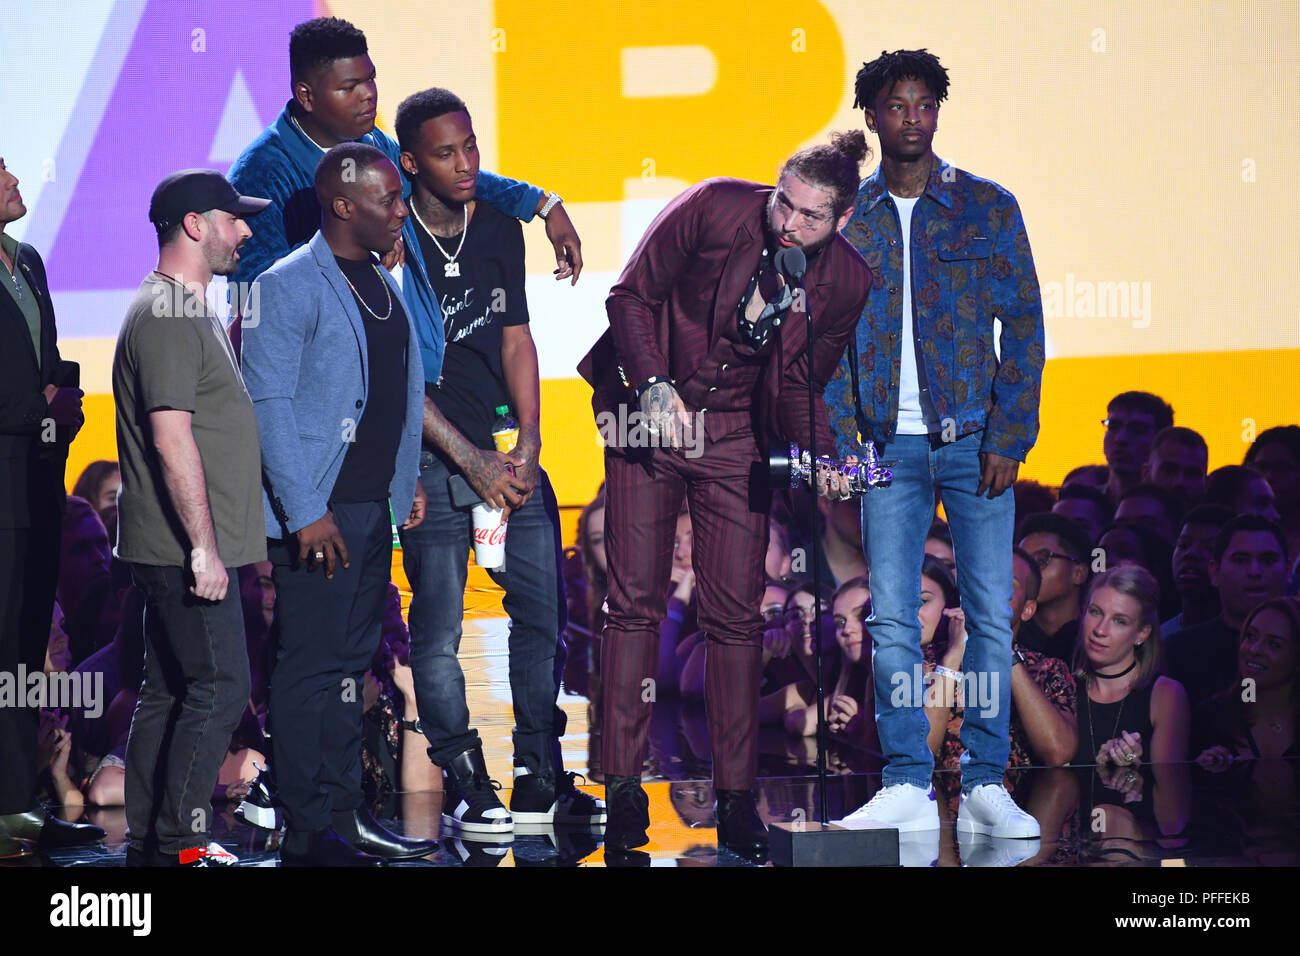 Post Malone accepts the award for Song of the Year on stage